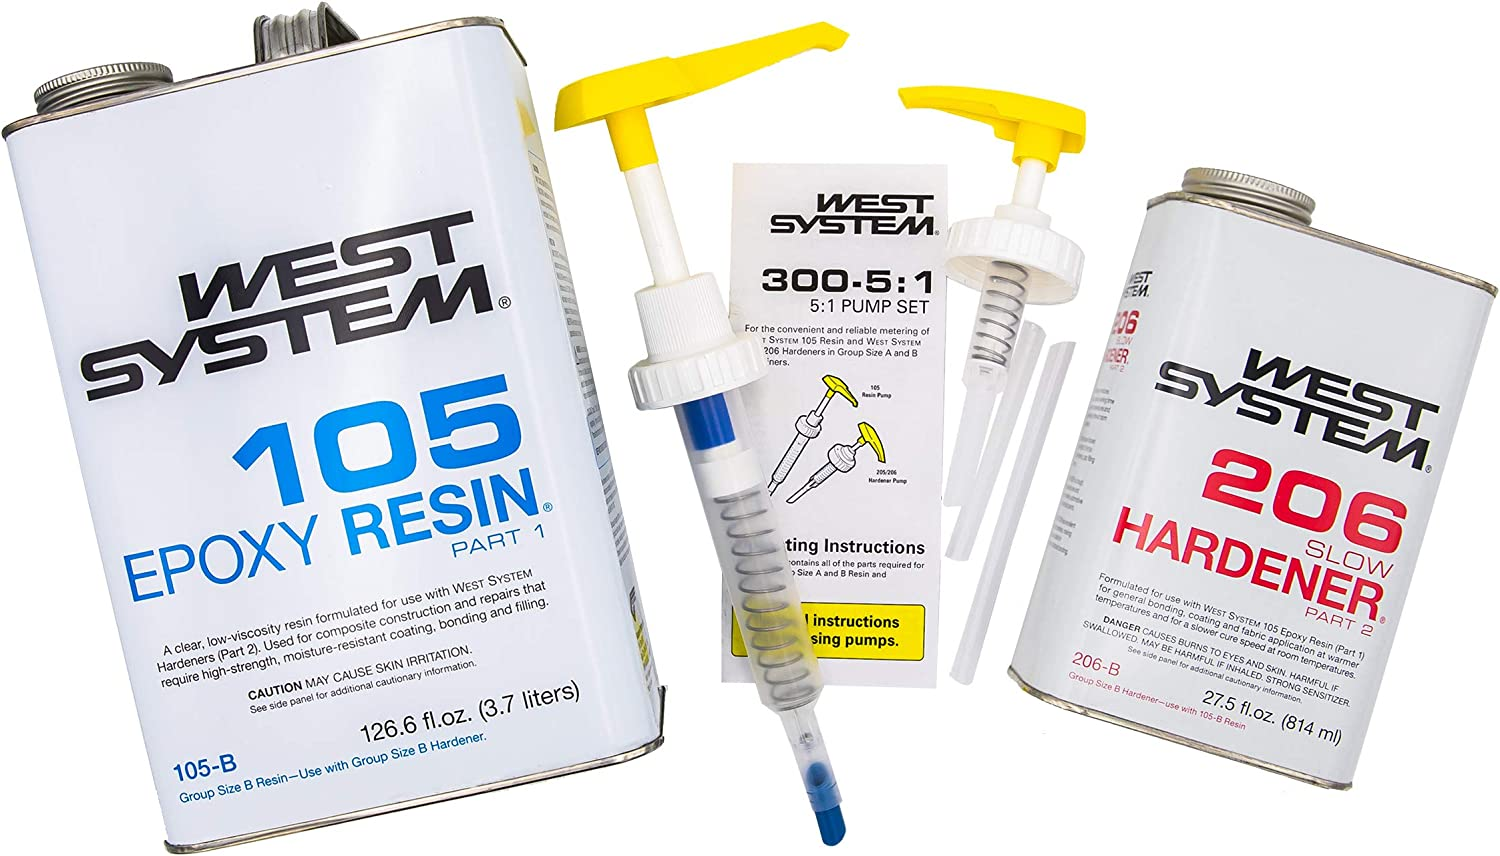 West Now on sale System 105-B Epoxy Resin 206-B Slow Harde Bundle with Superior